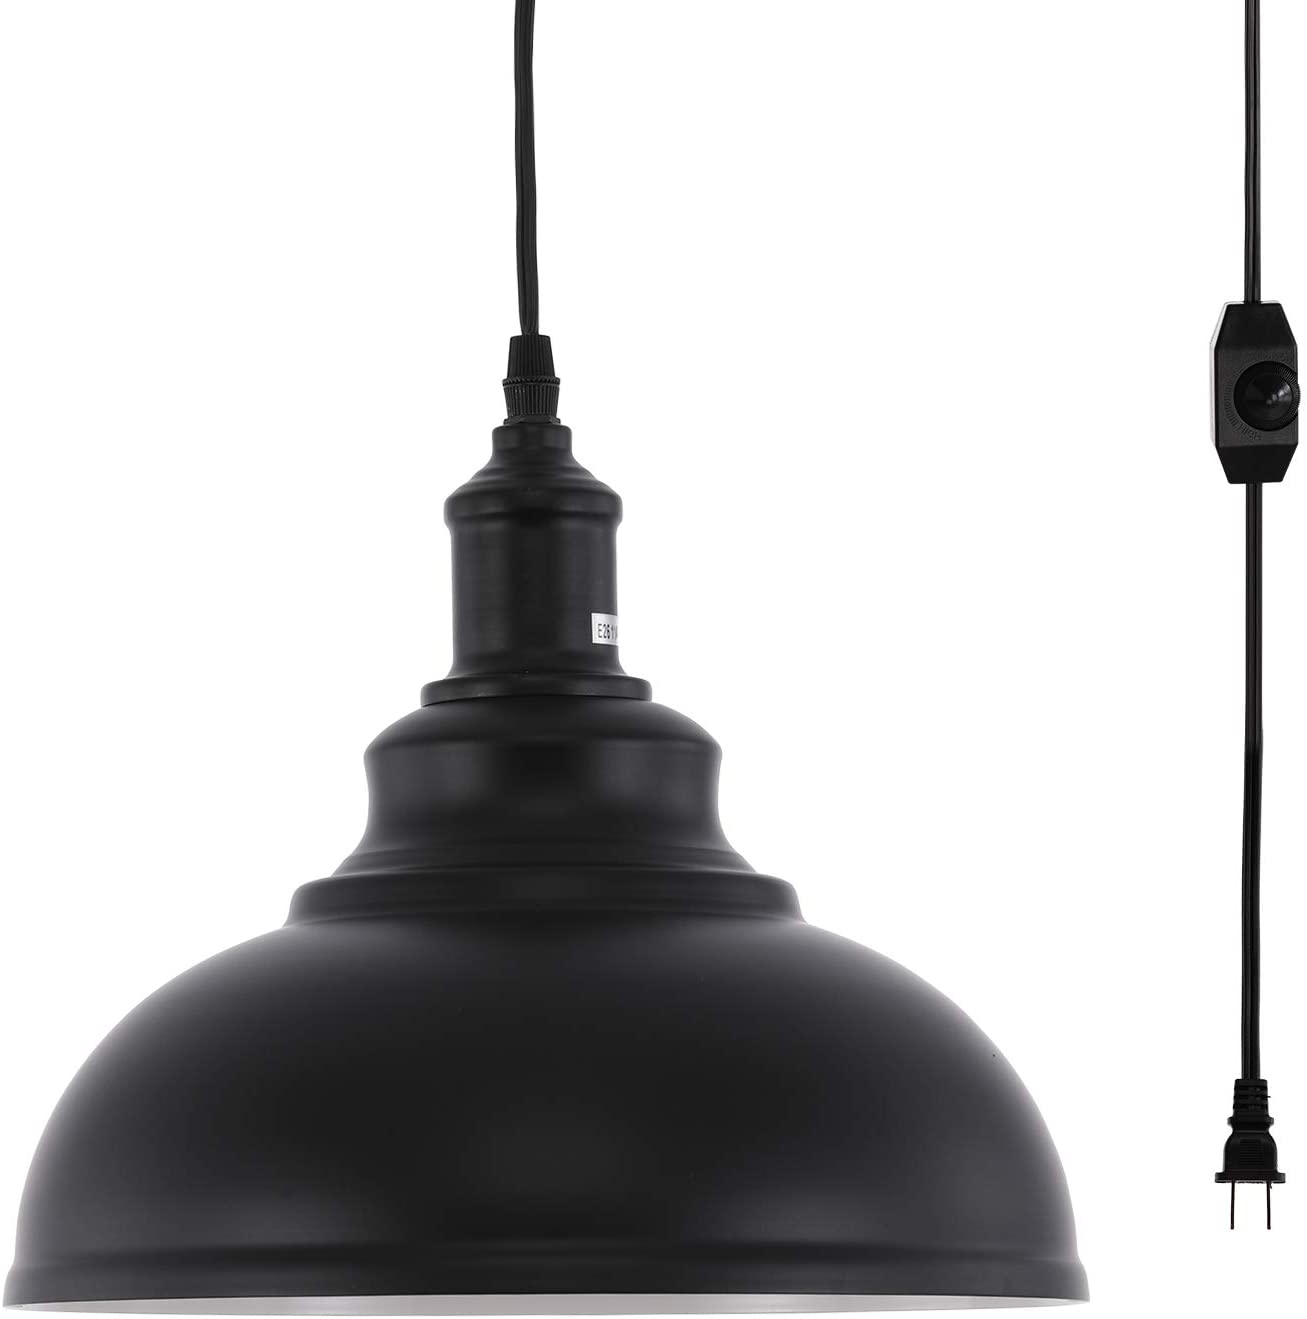 HMVPL Industrial Barn Pendant Light with Plug in Cord and On Off Dimmer Switch, Metal Hanging Ceiling Lamp for Kitchen Island, Dining Room, Bedroom or Barn